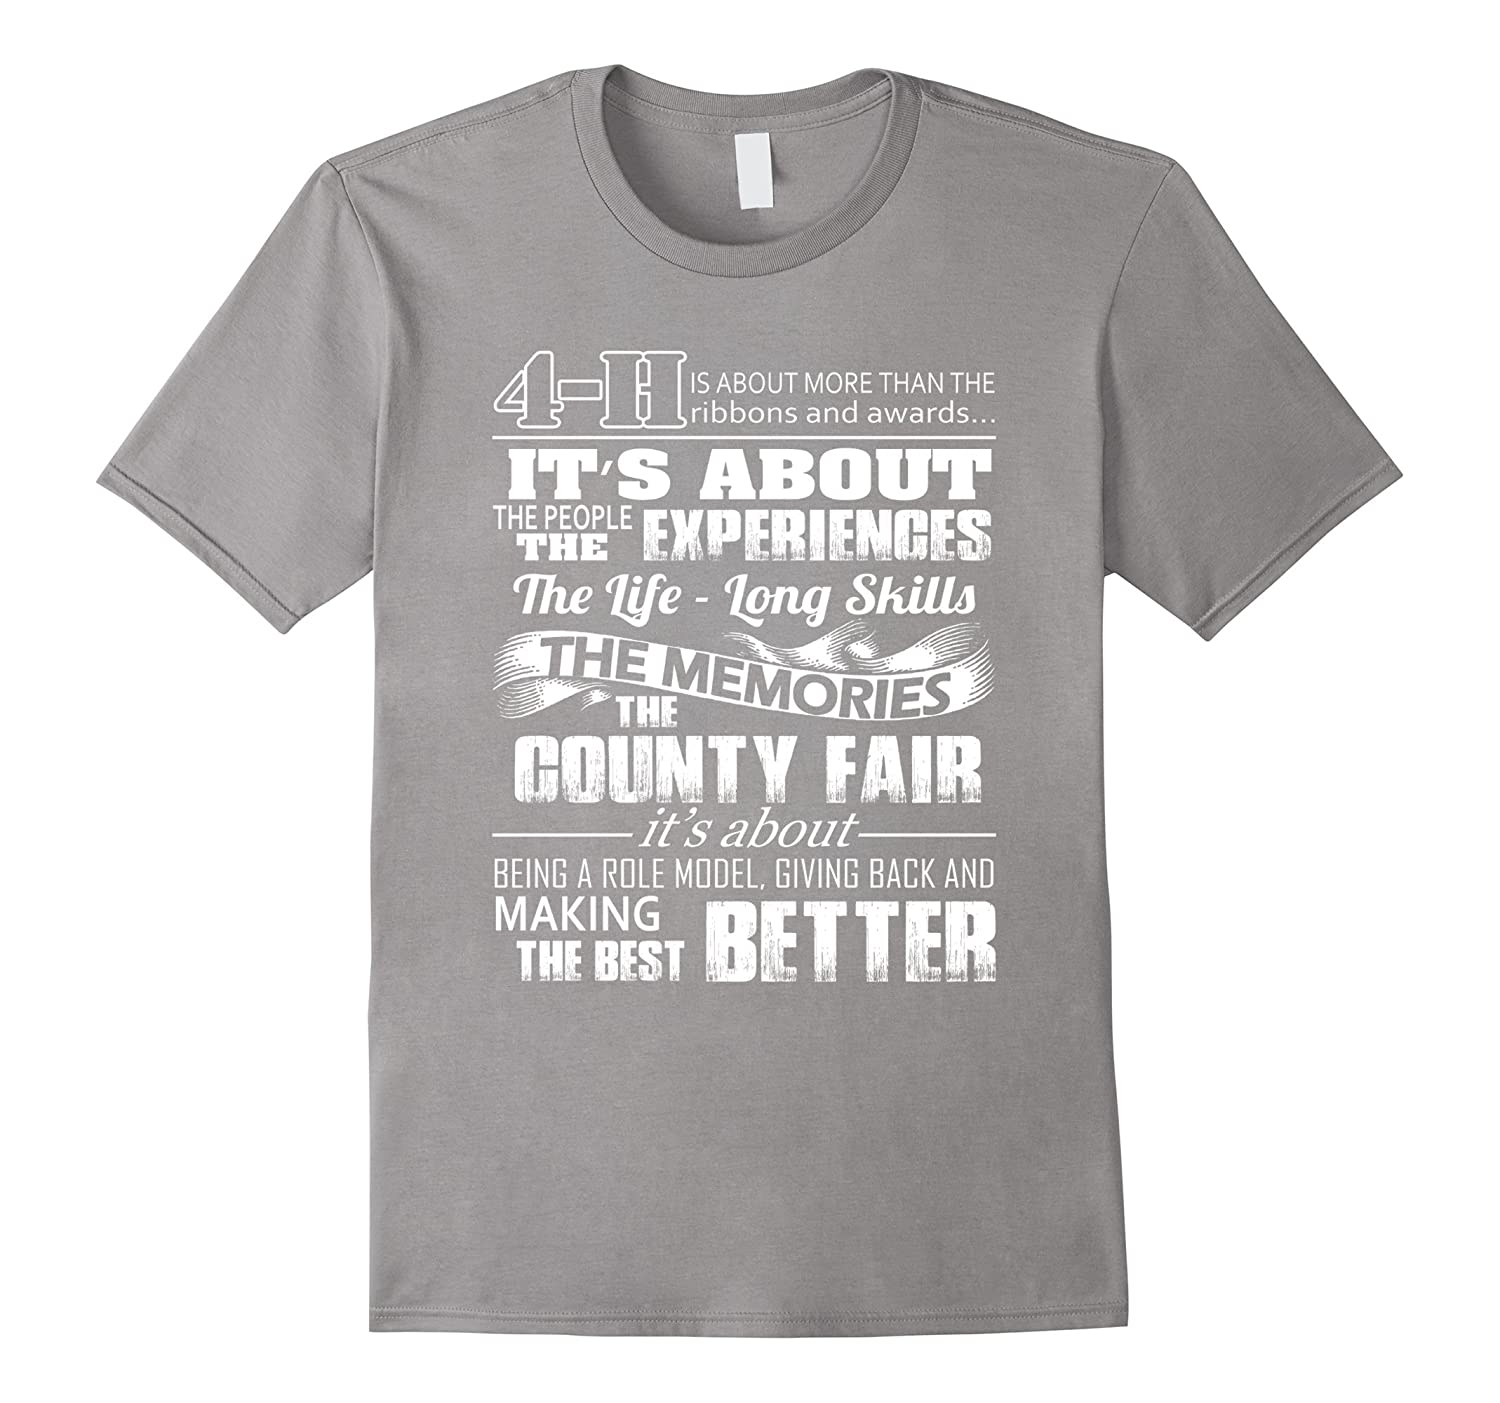 4 H experiences memories the best better- 4 H saying shirt-TD